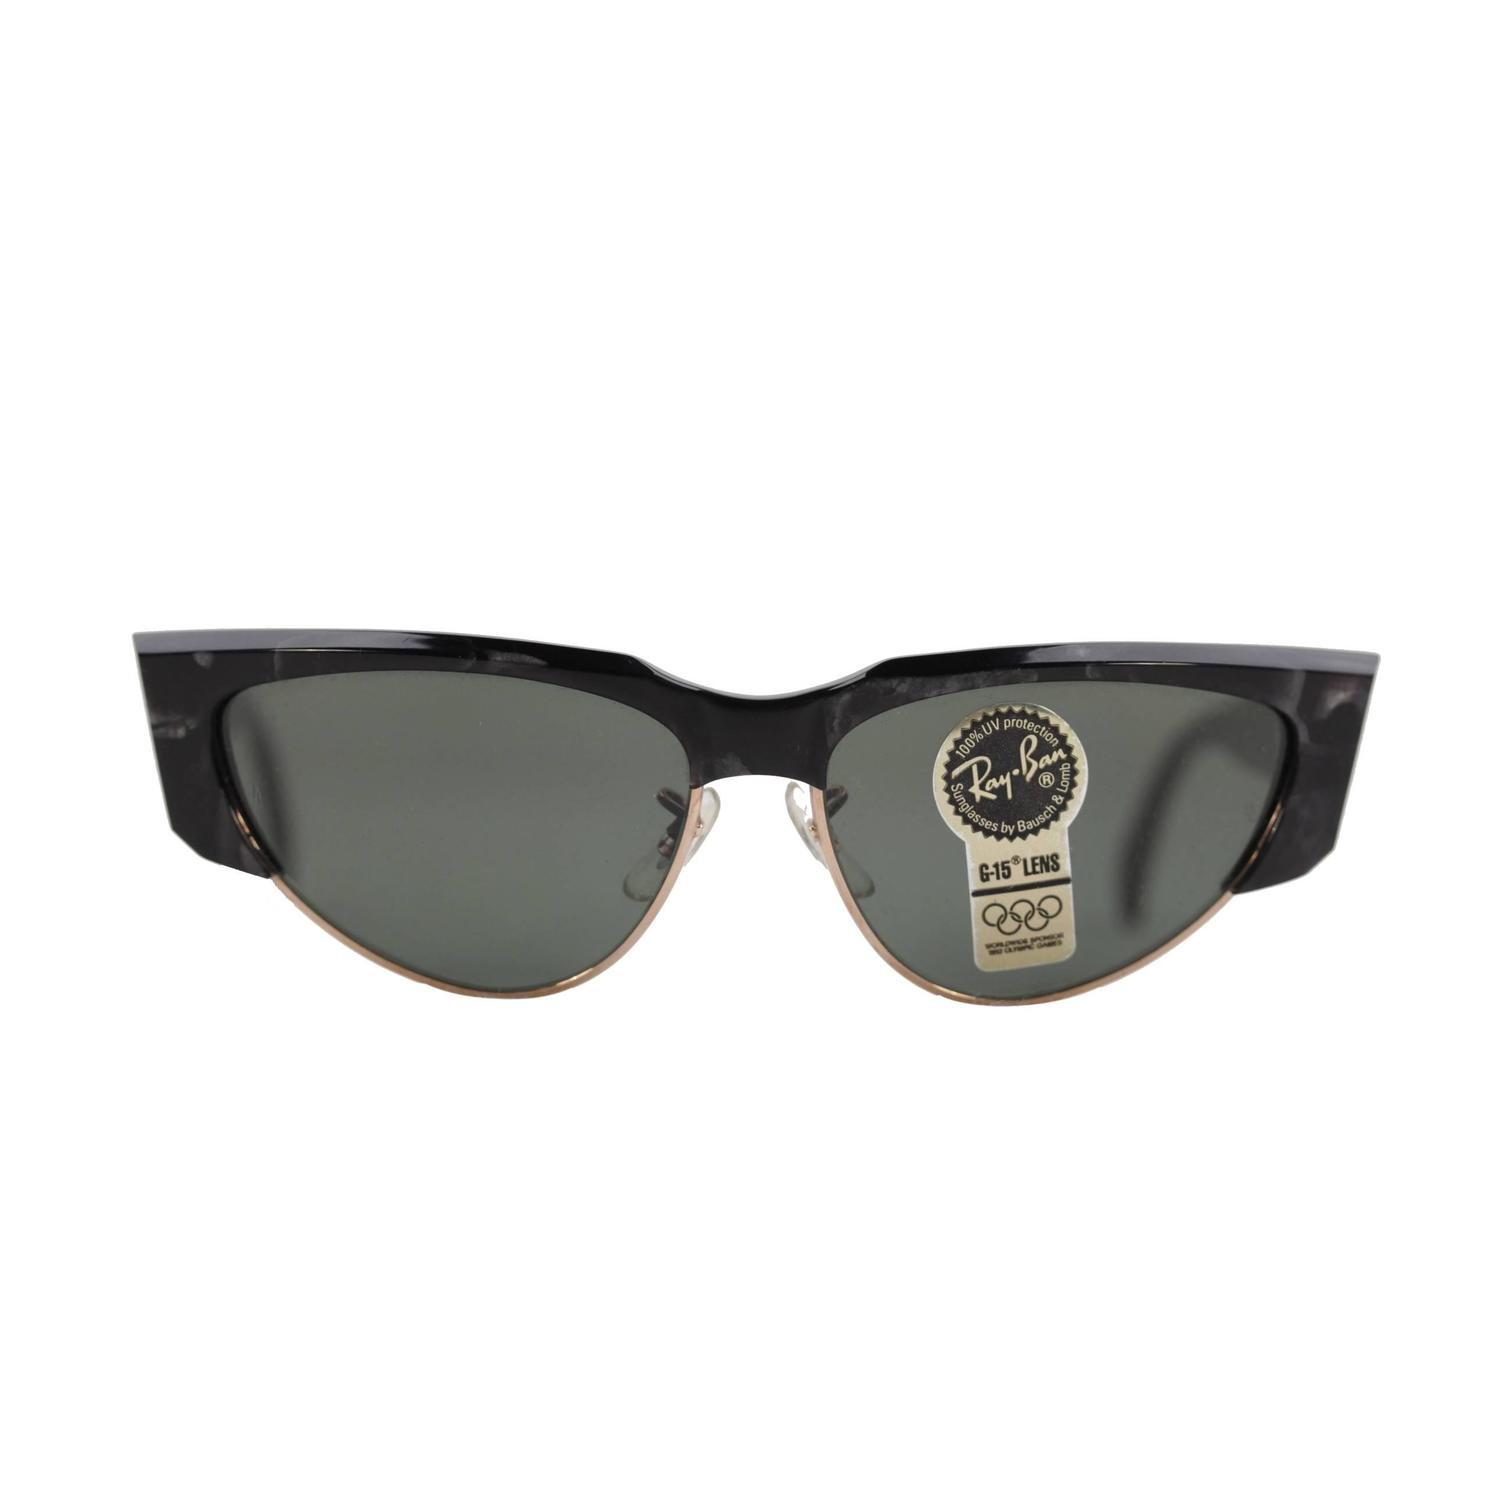 ray ban sunglasses logo sticker